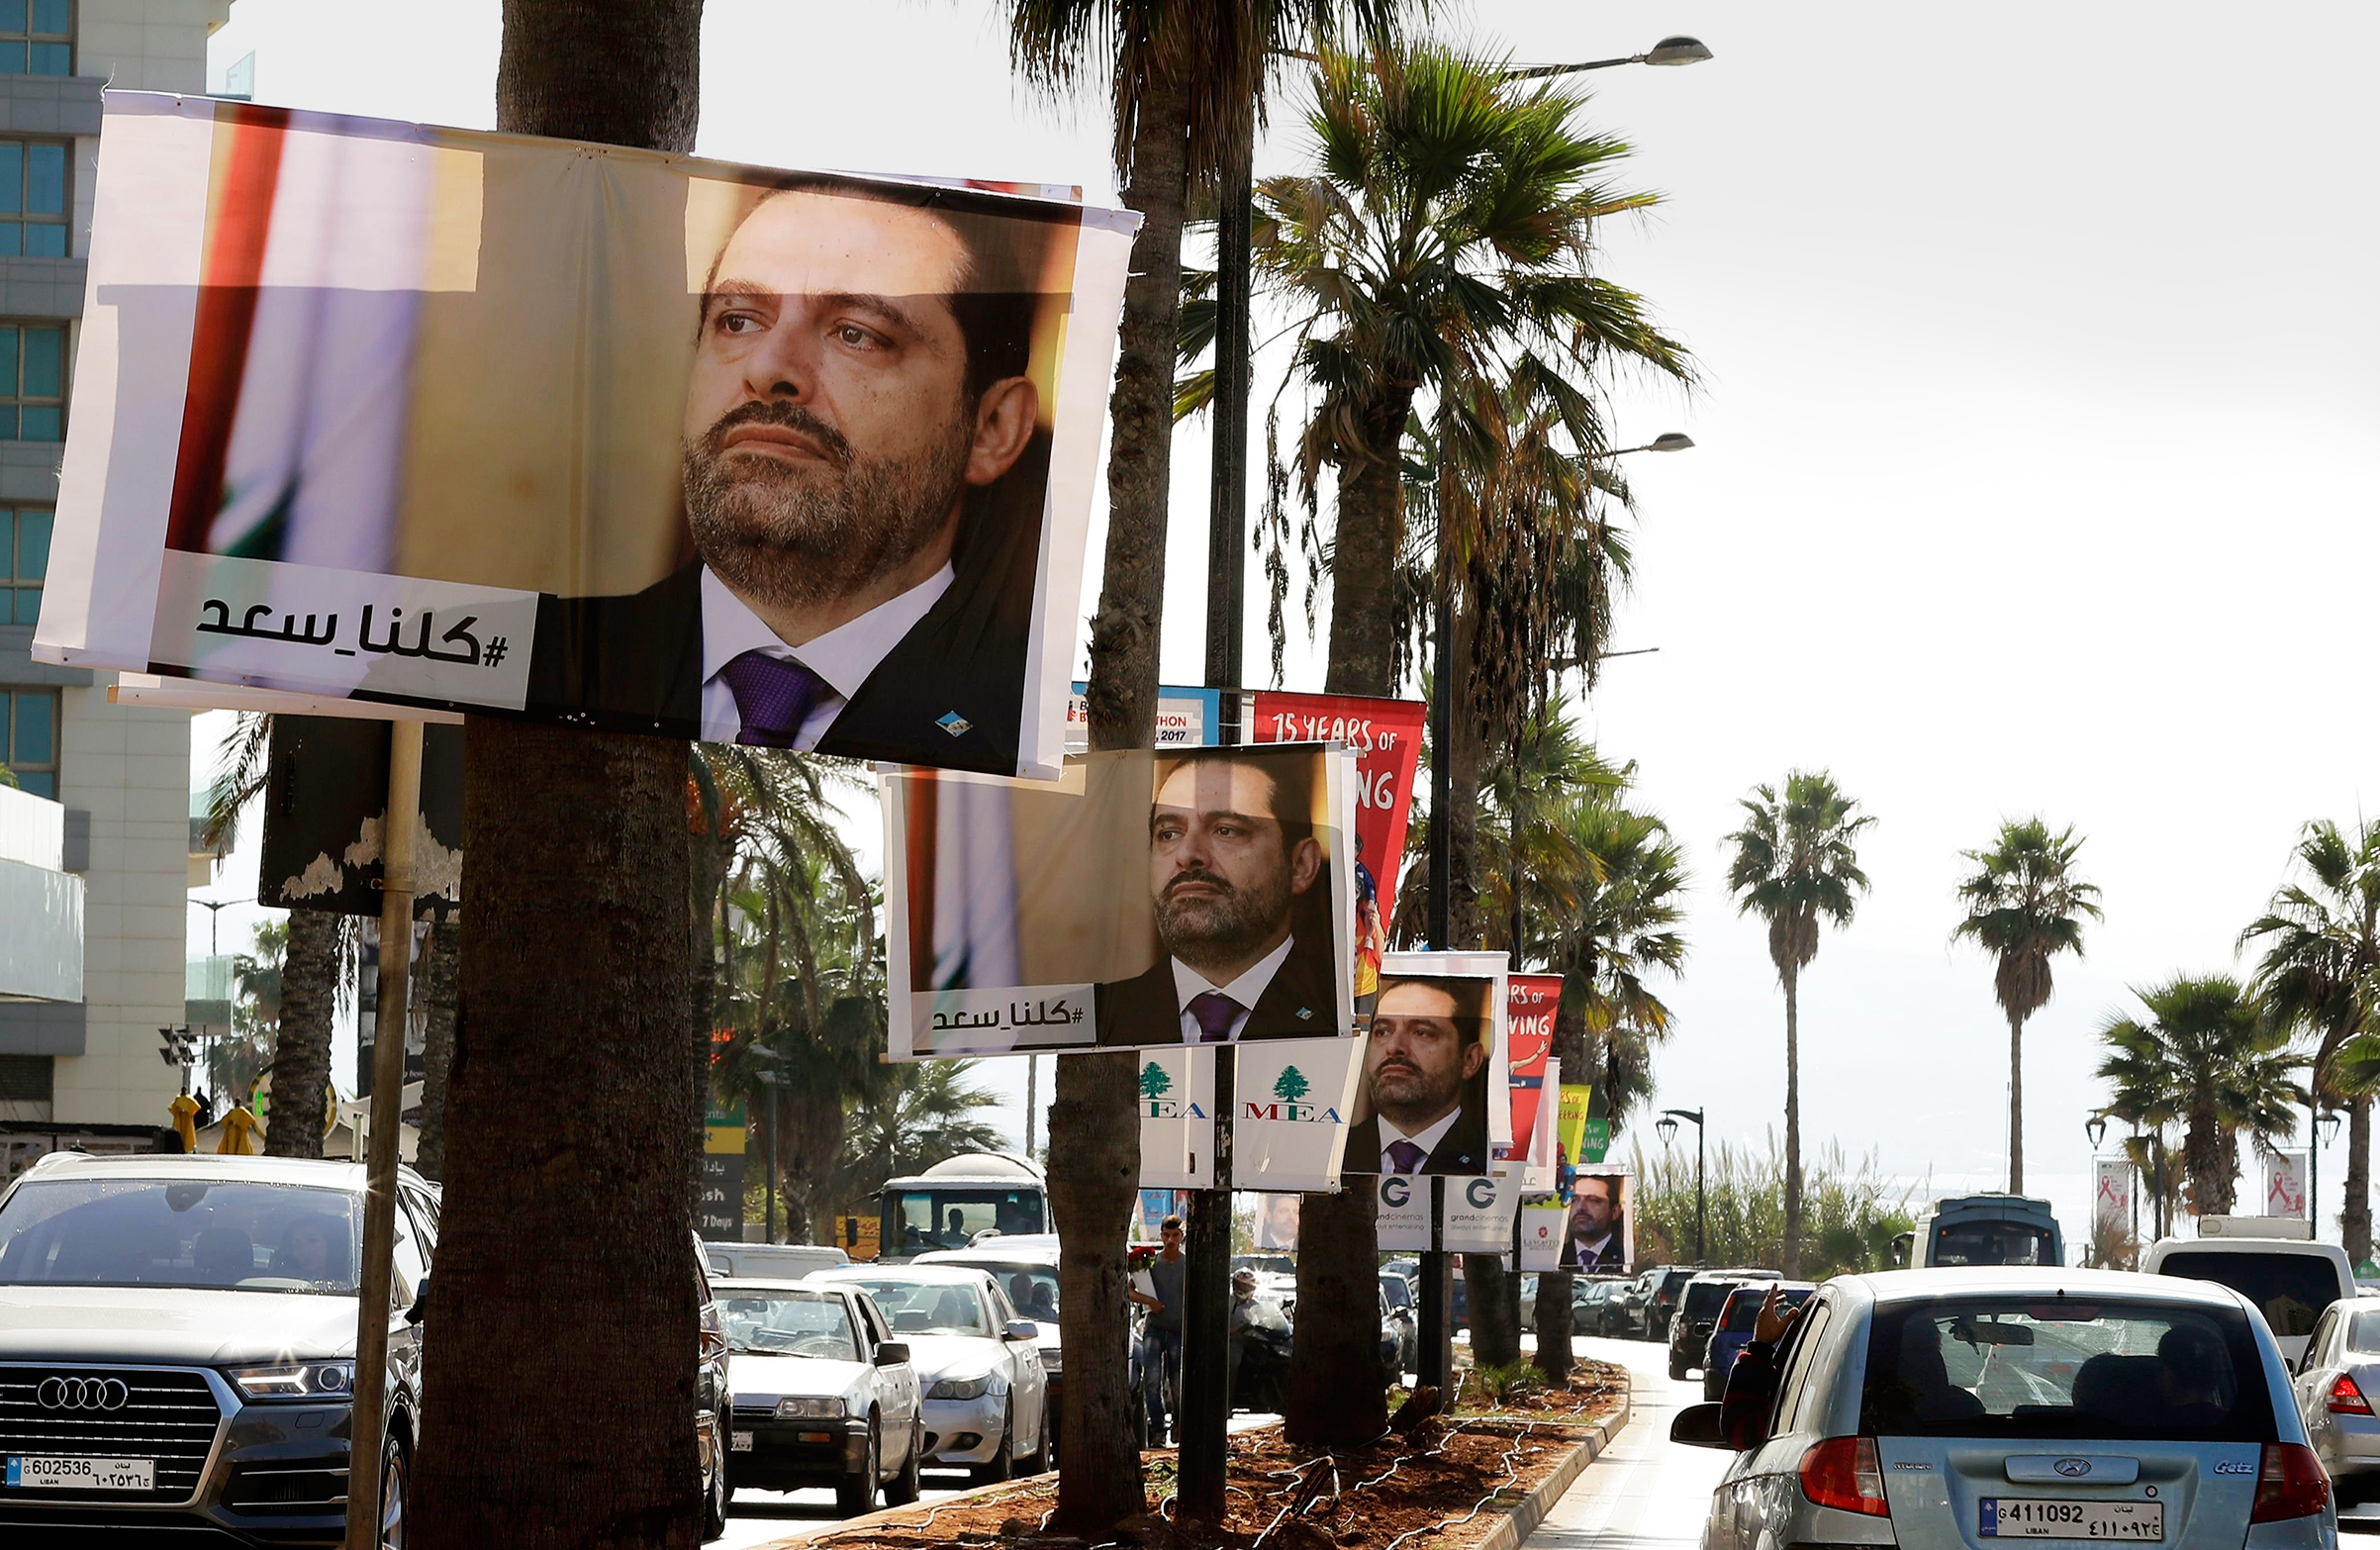 Posters of Lebanon's leader Saad Hariri with the caption #We_are_all_Saad in Beirut on Nov. 10Hariri's announced resignation sparked concerns of a political crisis in Lebanon as tensions between Saudi Arabia and Iran escalated. / AFP PHOTO / JOSEPH EIDJOSEPH EID/AFP/Getty Images